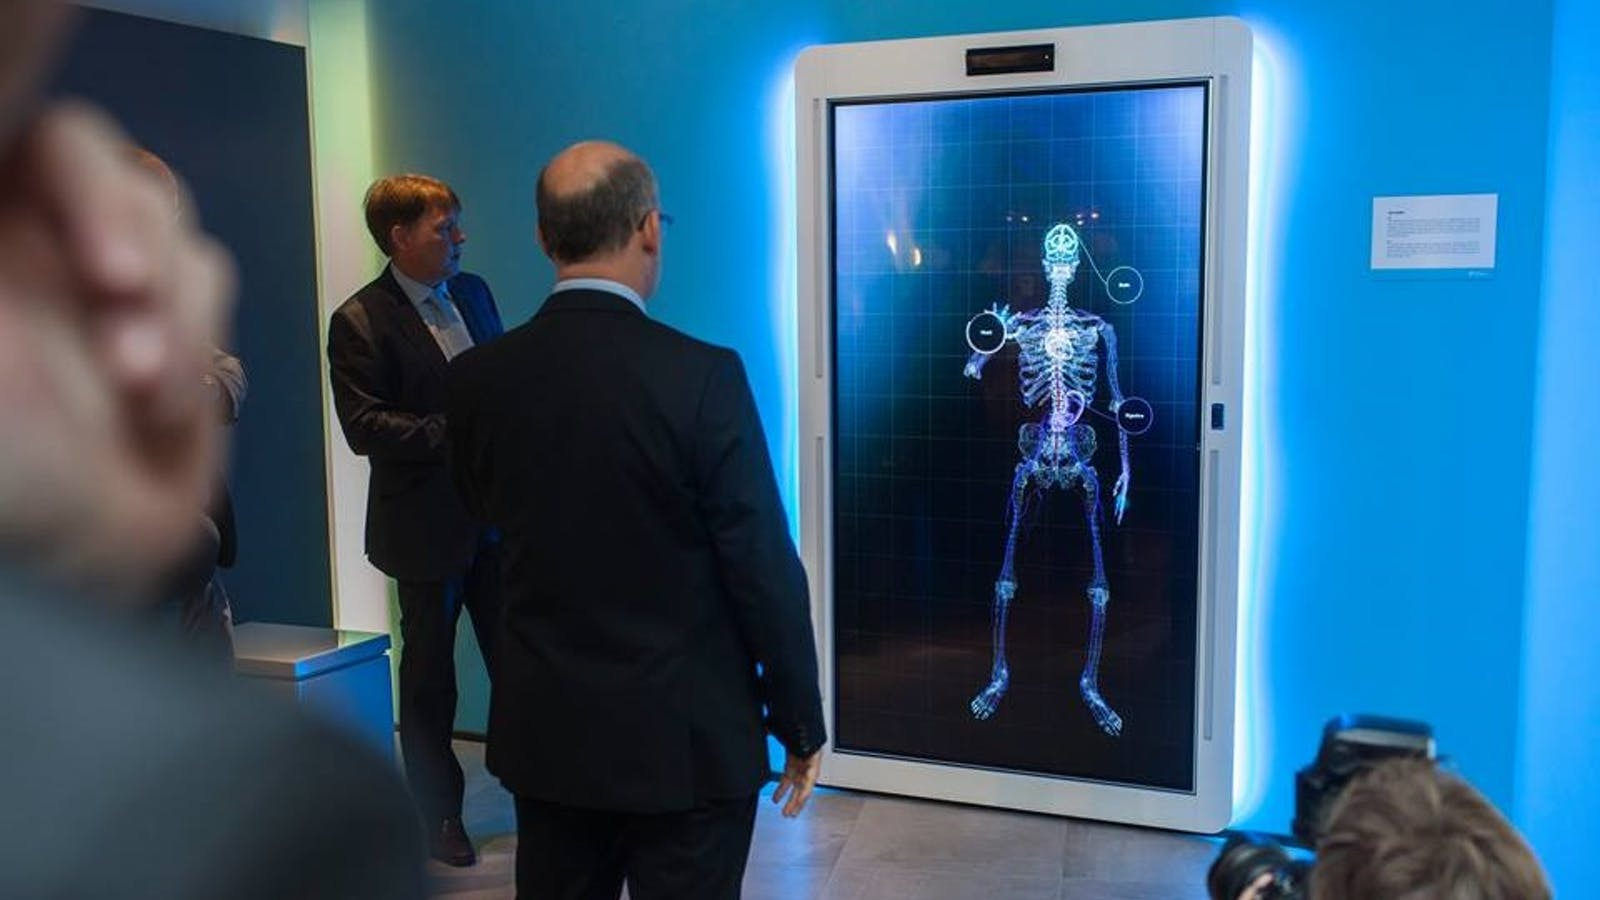 eHealth display with Kinect and sensors